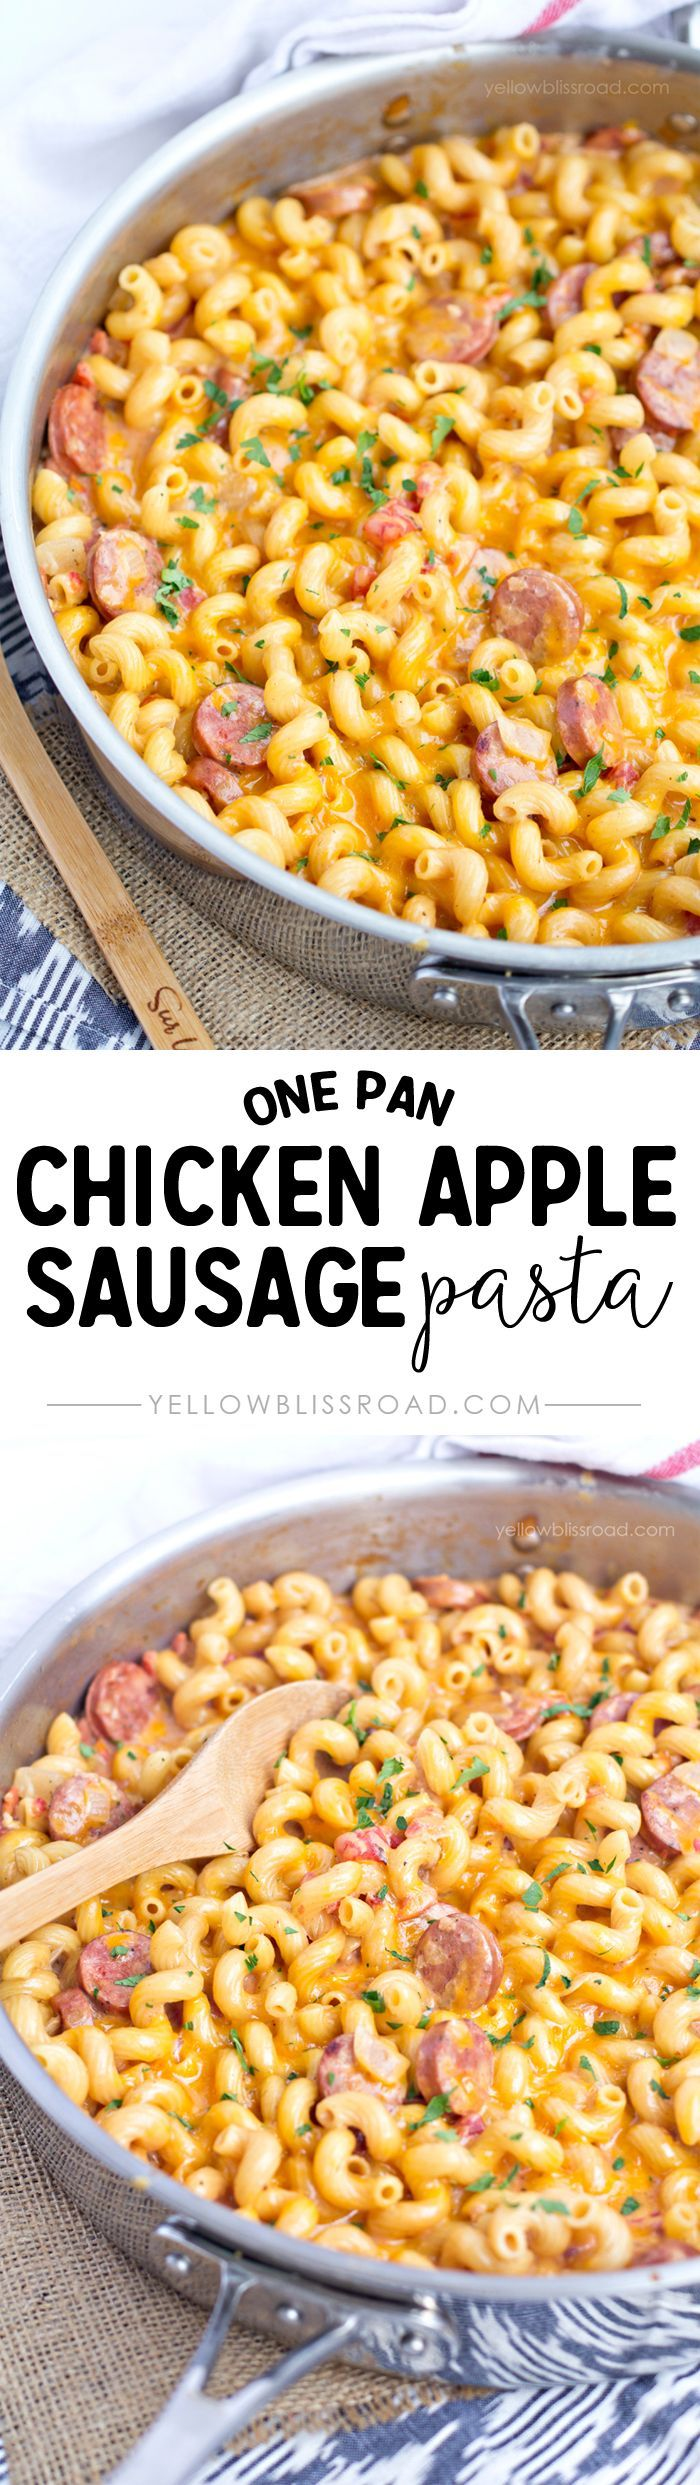 One Pan Chicken Apple Sausage Cheesy Pasta - perfect for busy nights and reade in 30 minutes